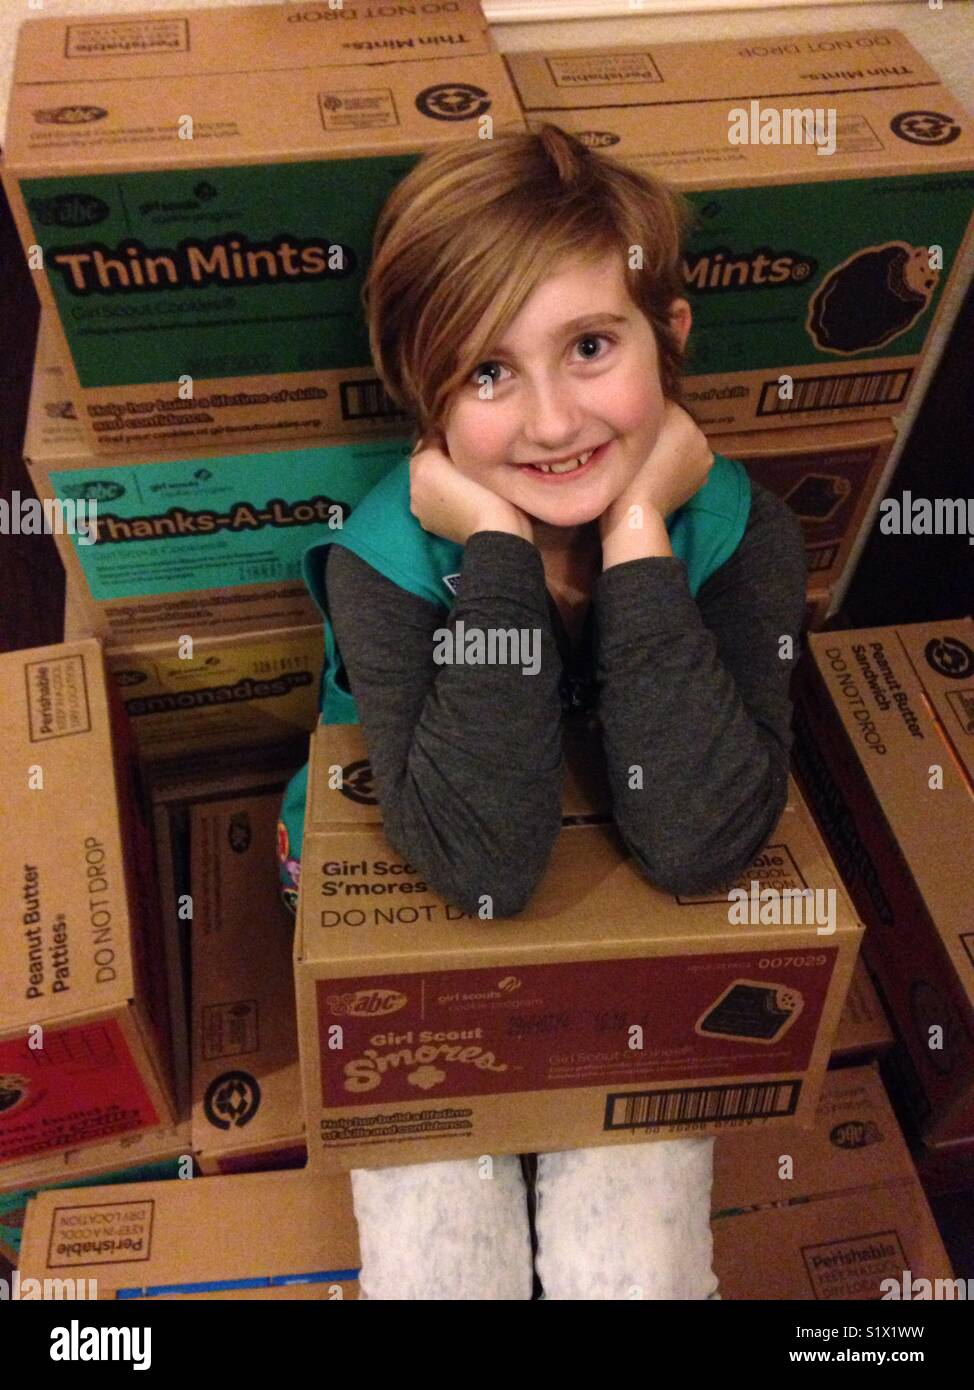 Girl Scout junior selling cookies for the fifth year! Pictured on her homemade cookie throne of 250 boxes of cookies! - Stock Image